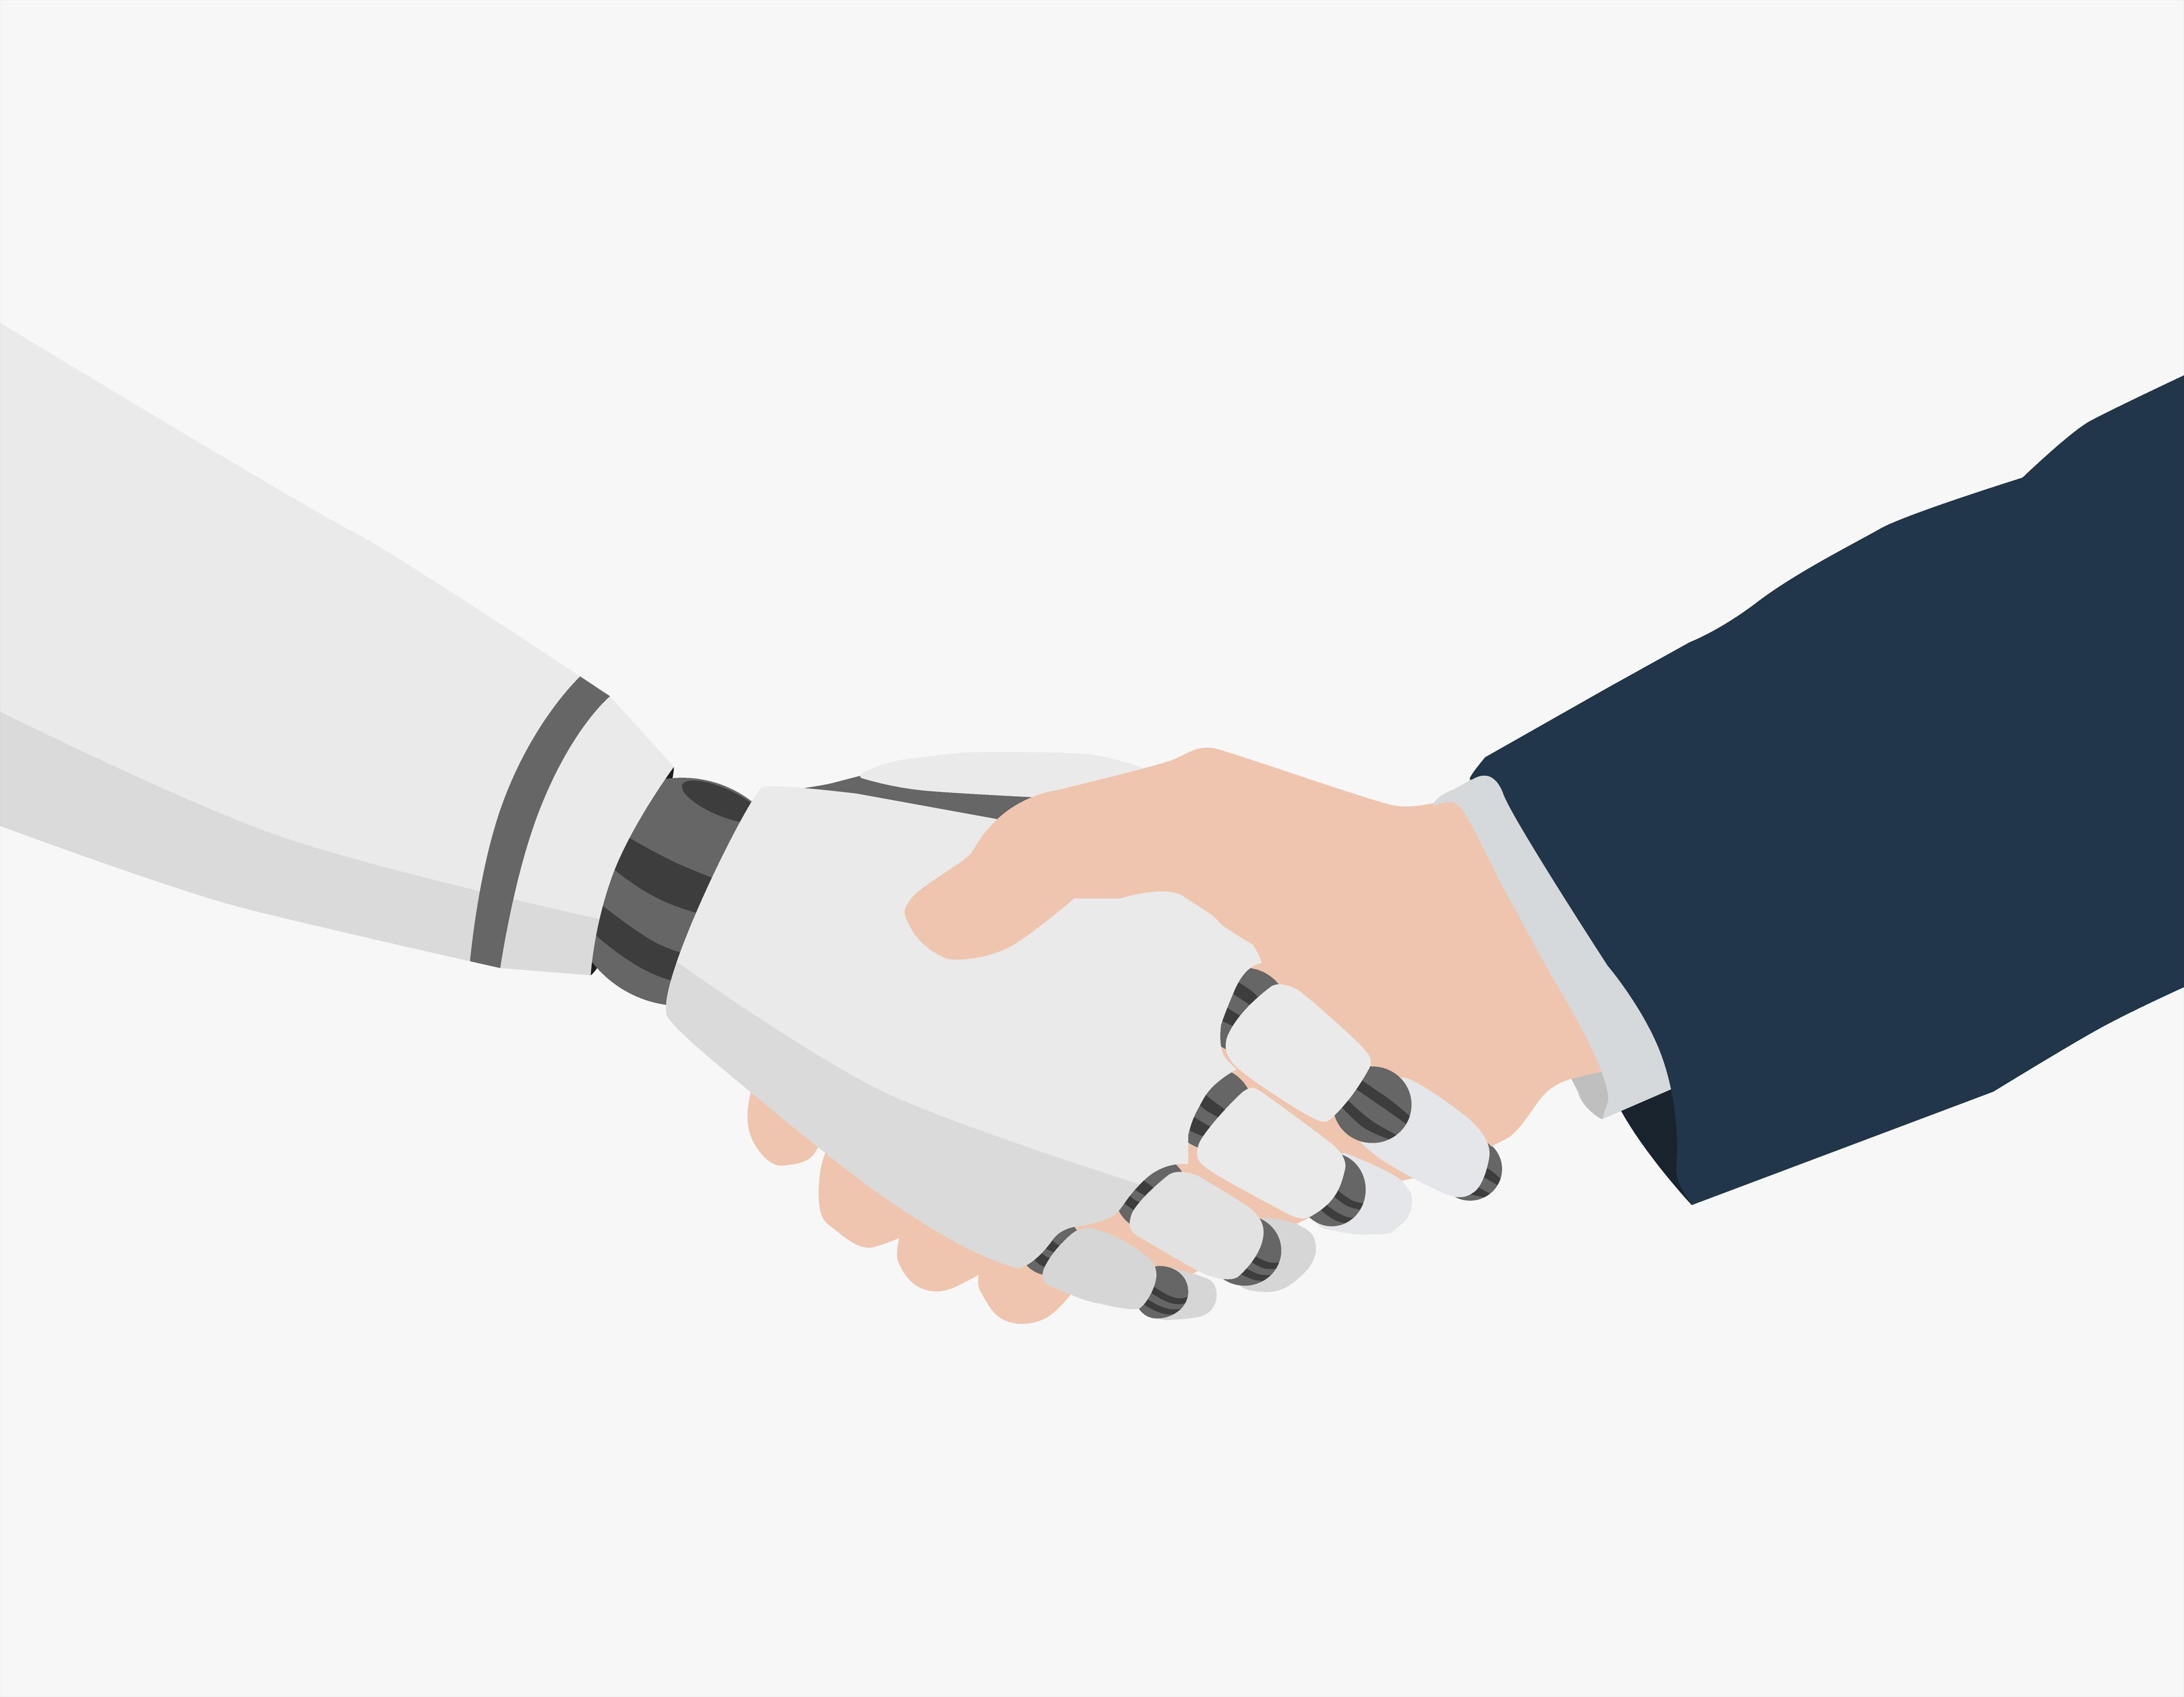 A robot and a human shake hands